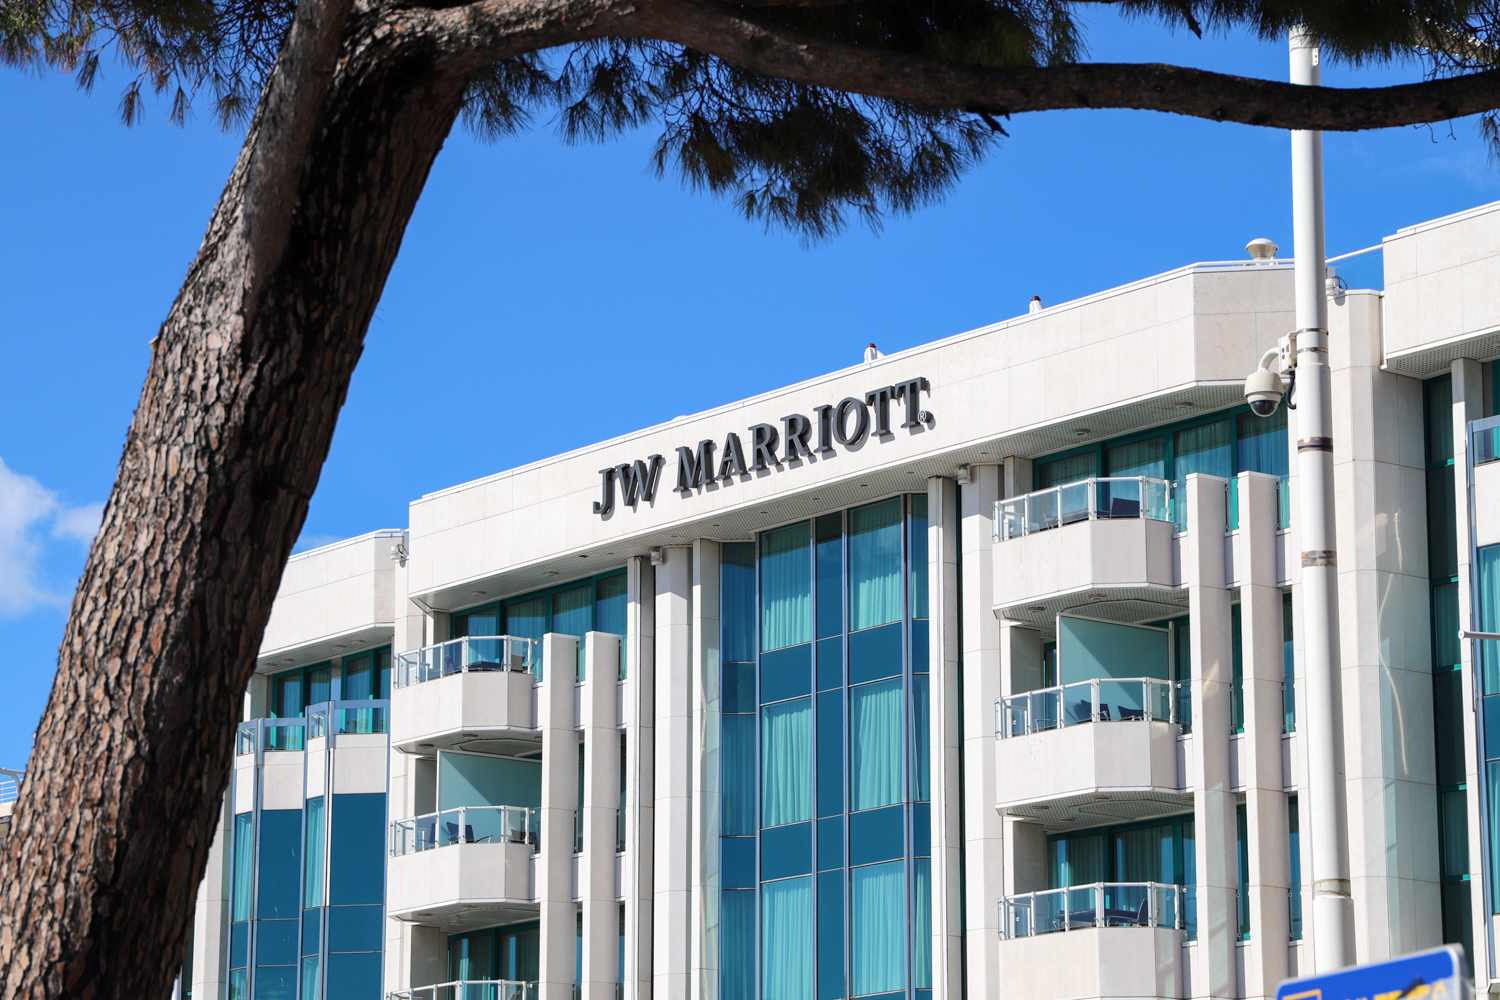 JW Marriott Cannes France